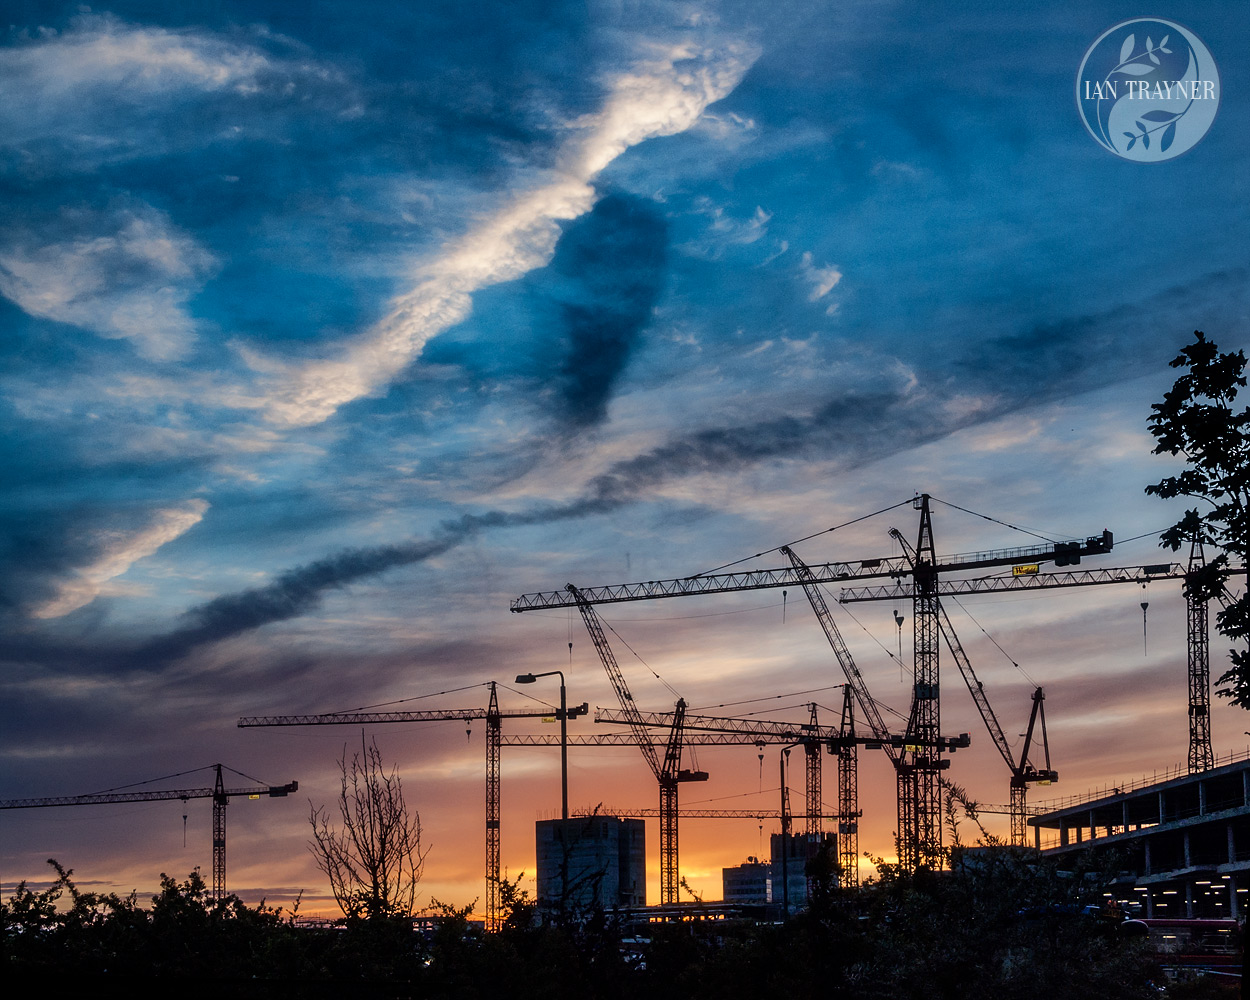 Stunning skyscape with sihouetted cranes. Construction of the Westield London shopping centre. Photo taken by Ian Trayner in 2007.